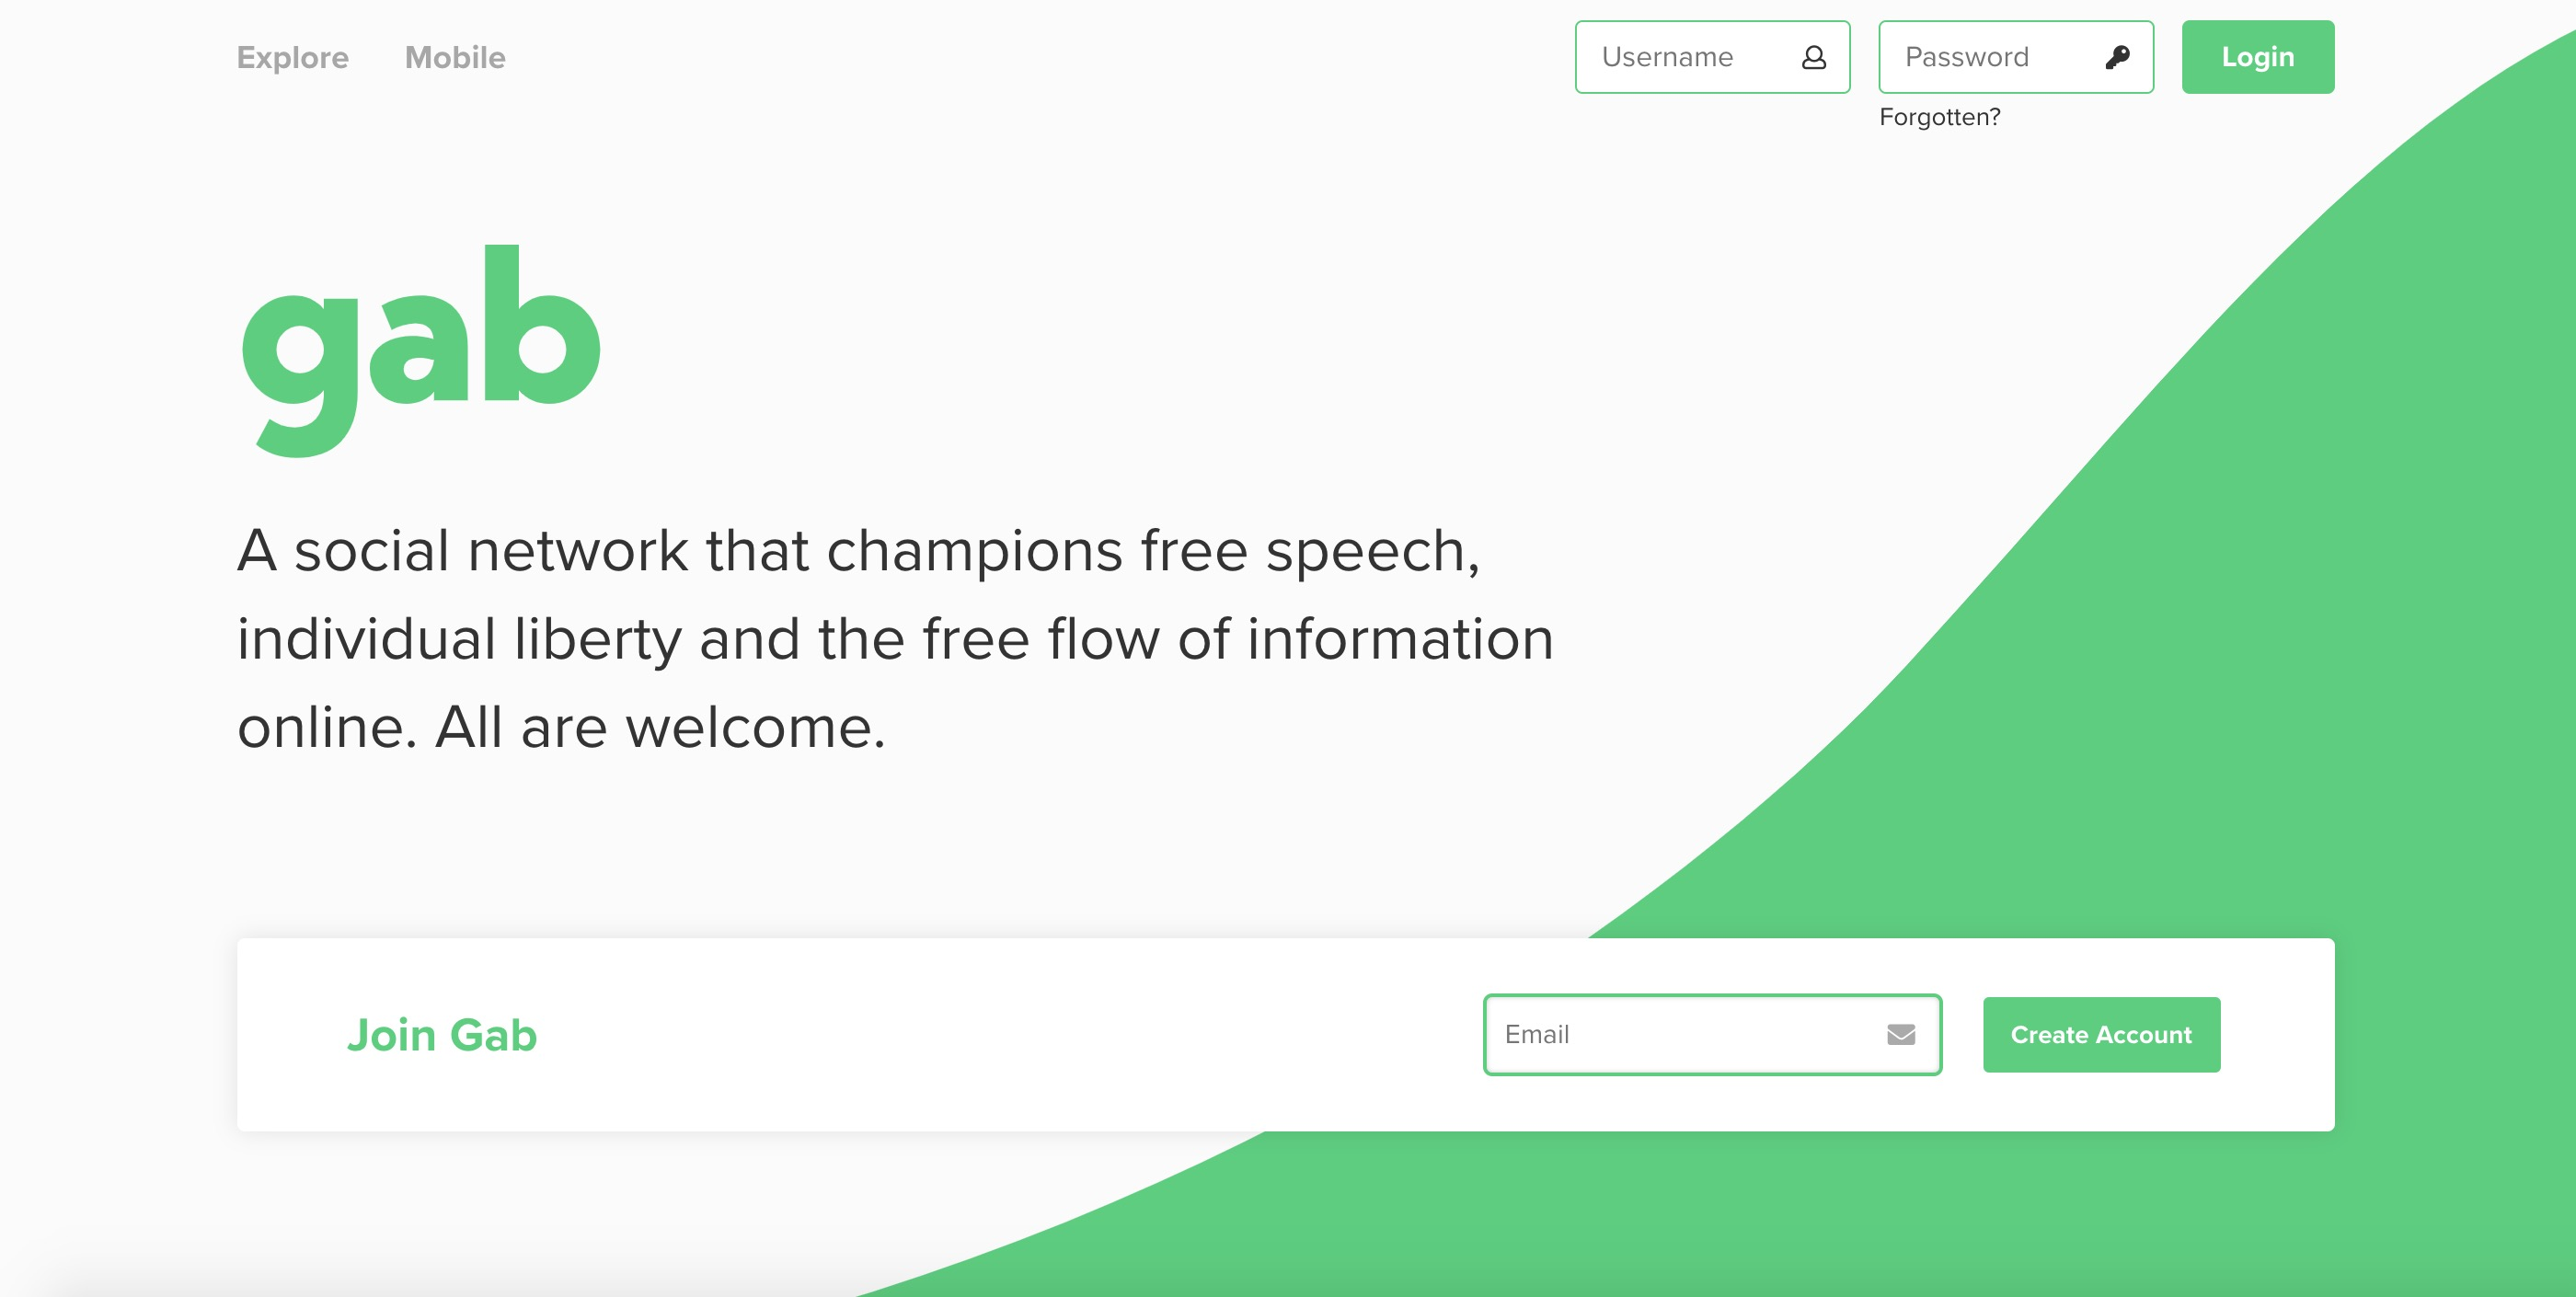 Gab social network temporarily shuts down after GoDaddy pulls support